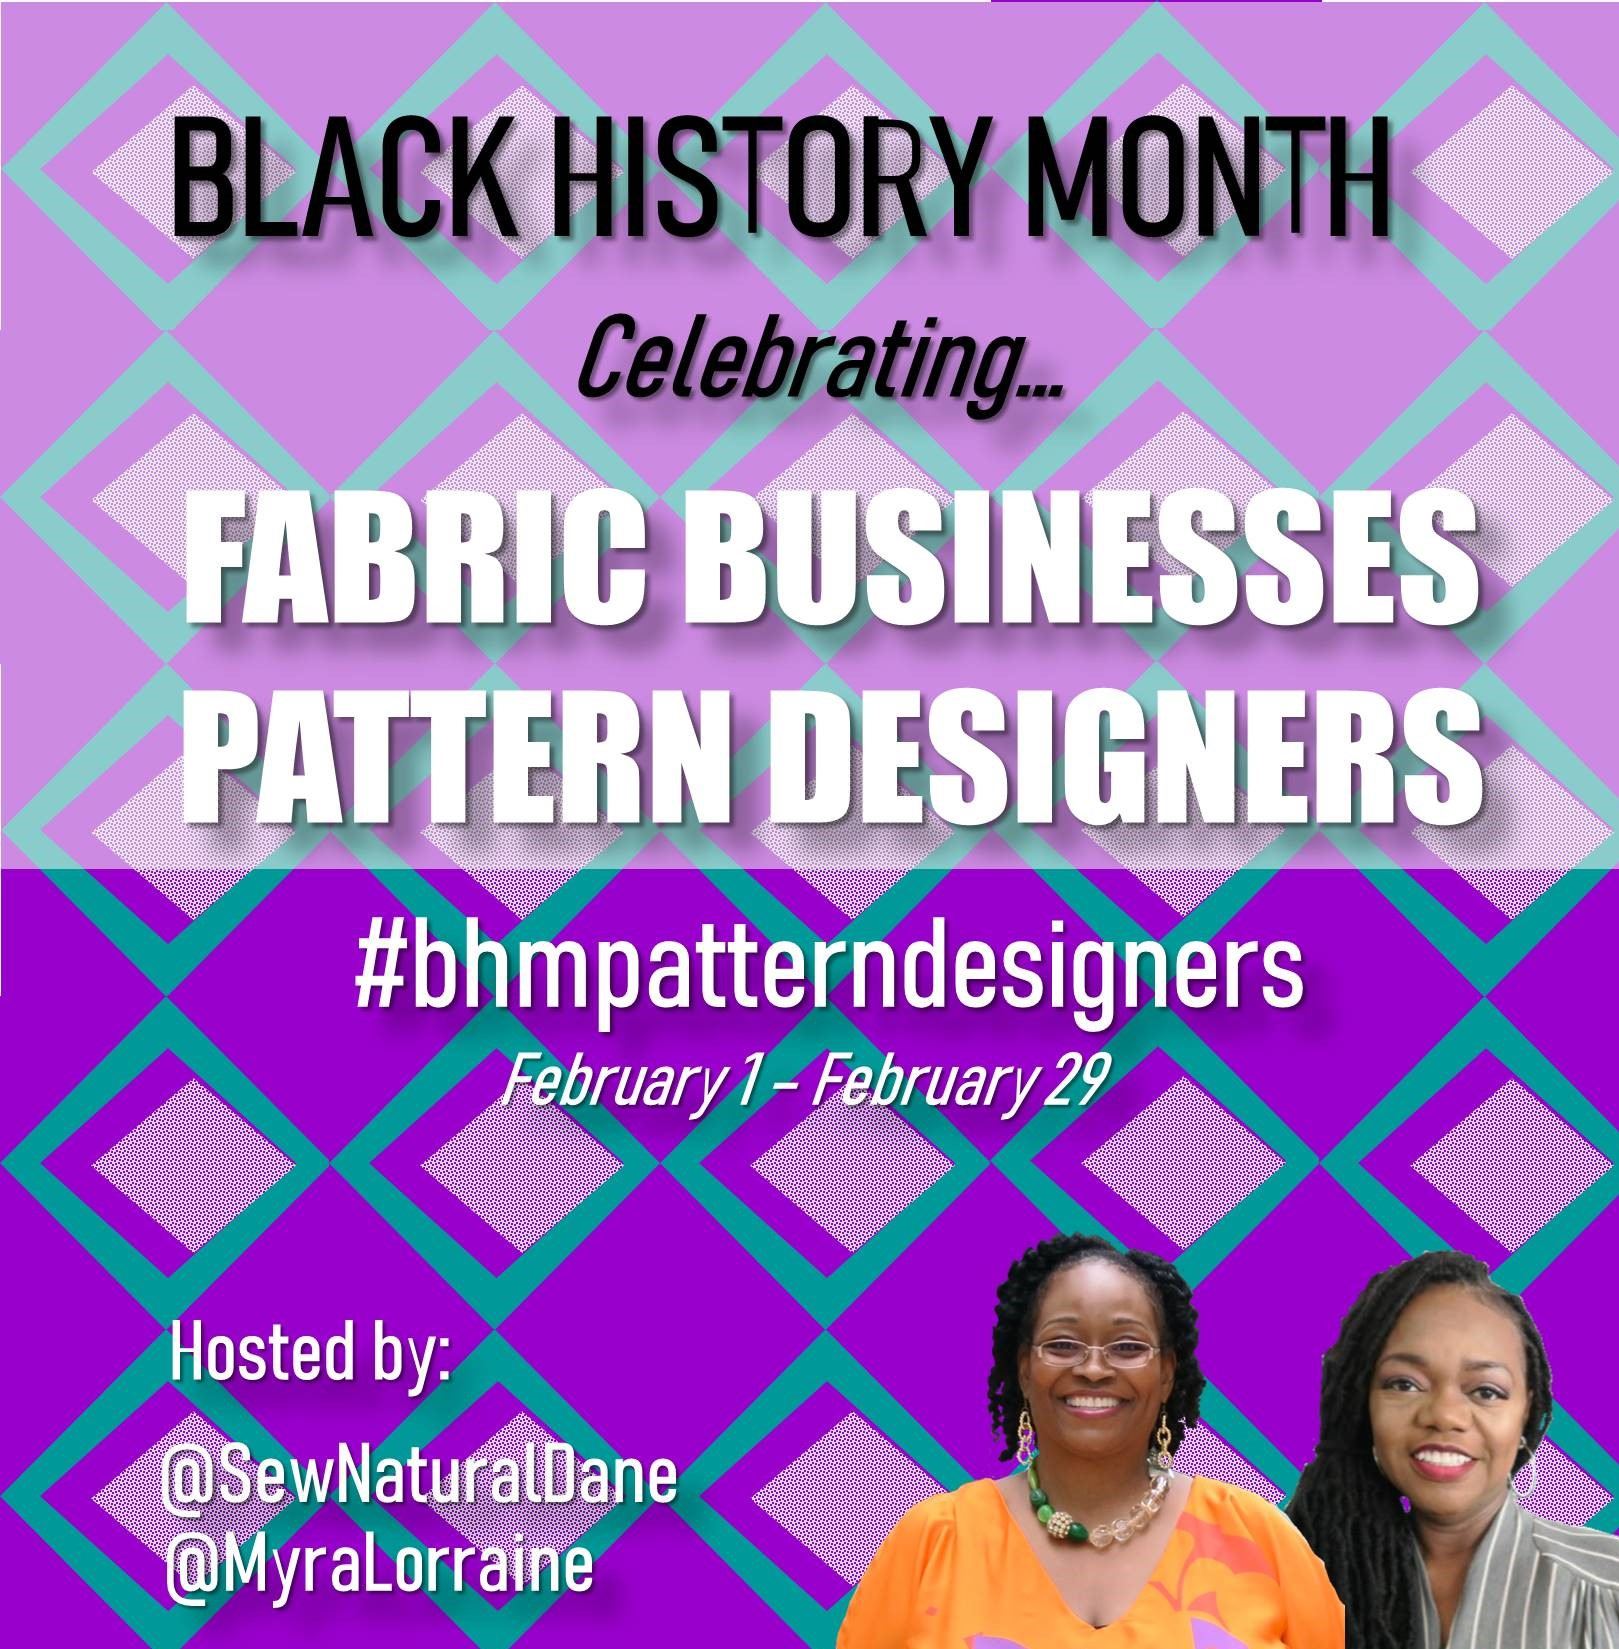 black-history-month-2020-bhmpatterndesigners-hosts